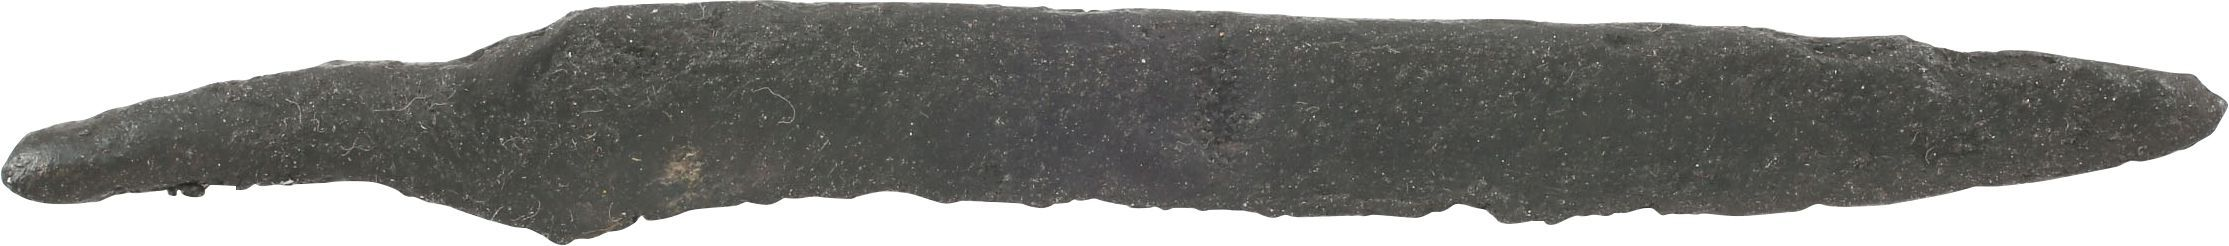 VIKING POCKET OR POUCH KNIFE